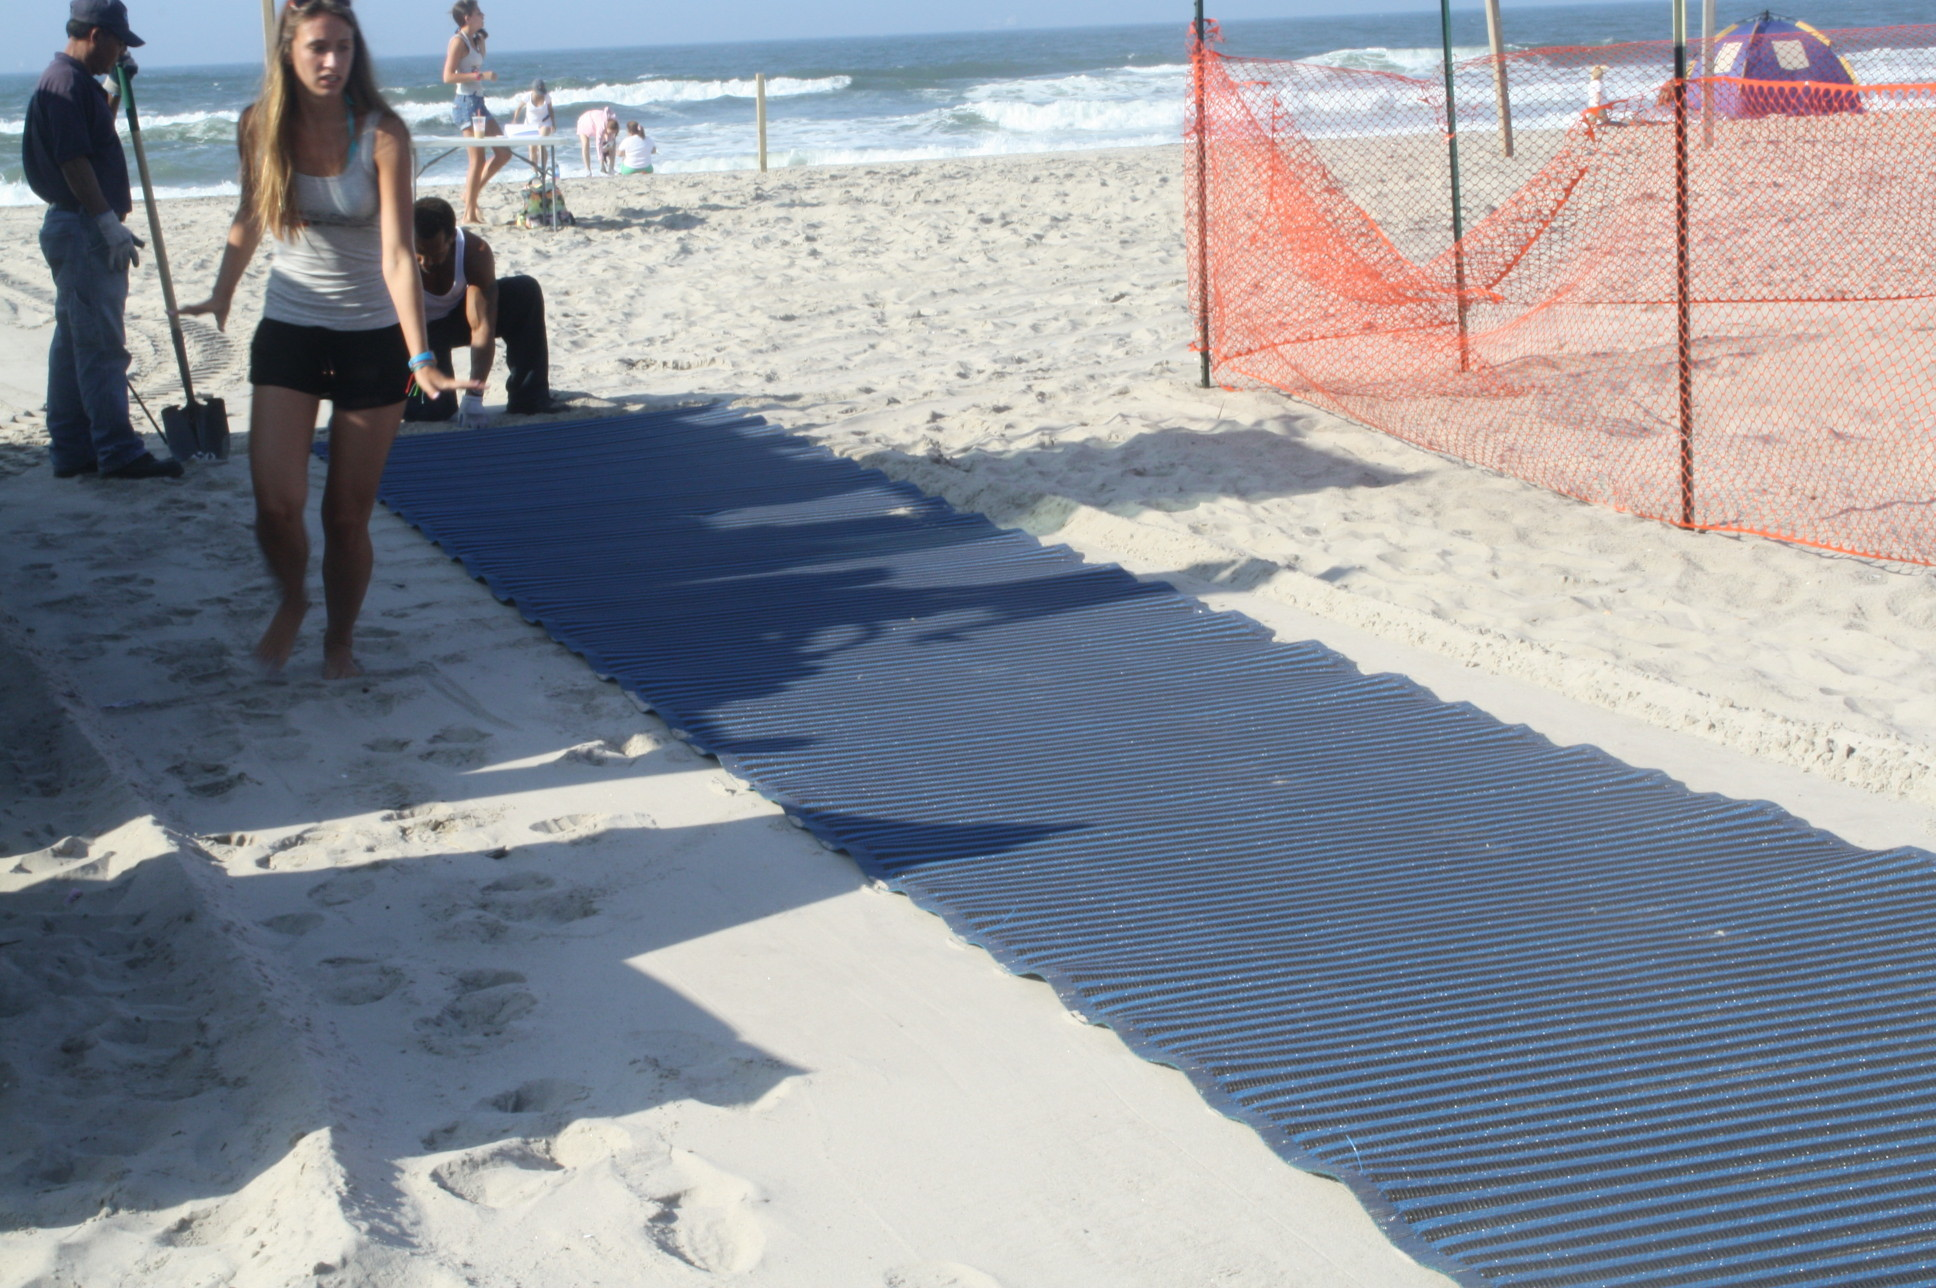 The mobility mats in years past, pictured, did not extend to the water, but the city is installing longer-extending mats at four beaches this summer.